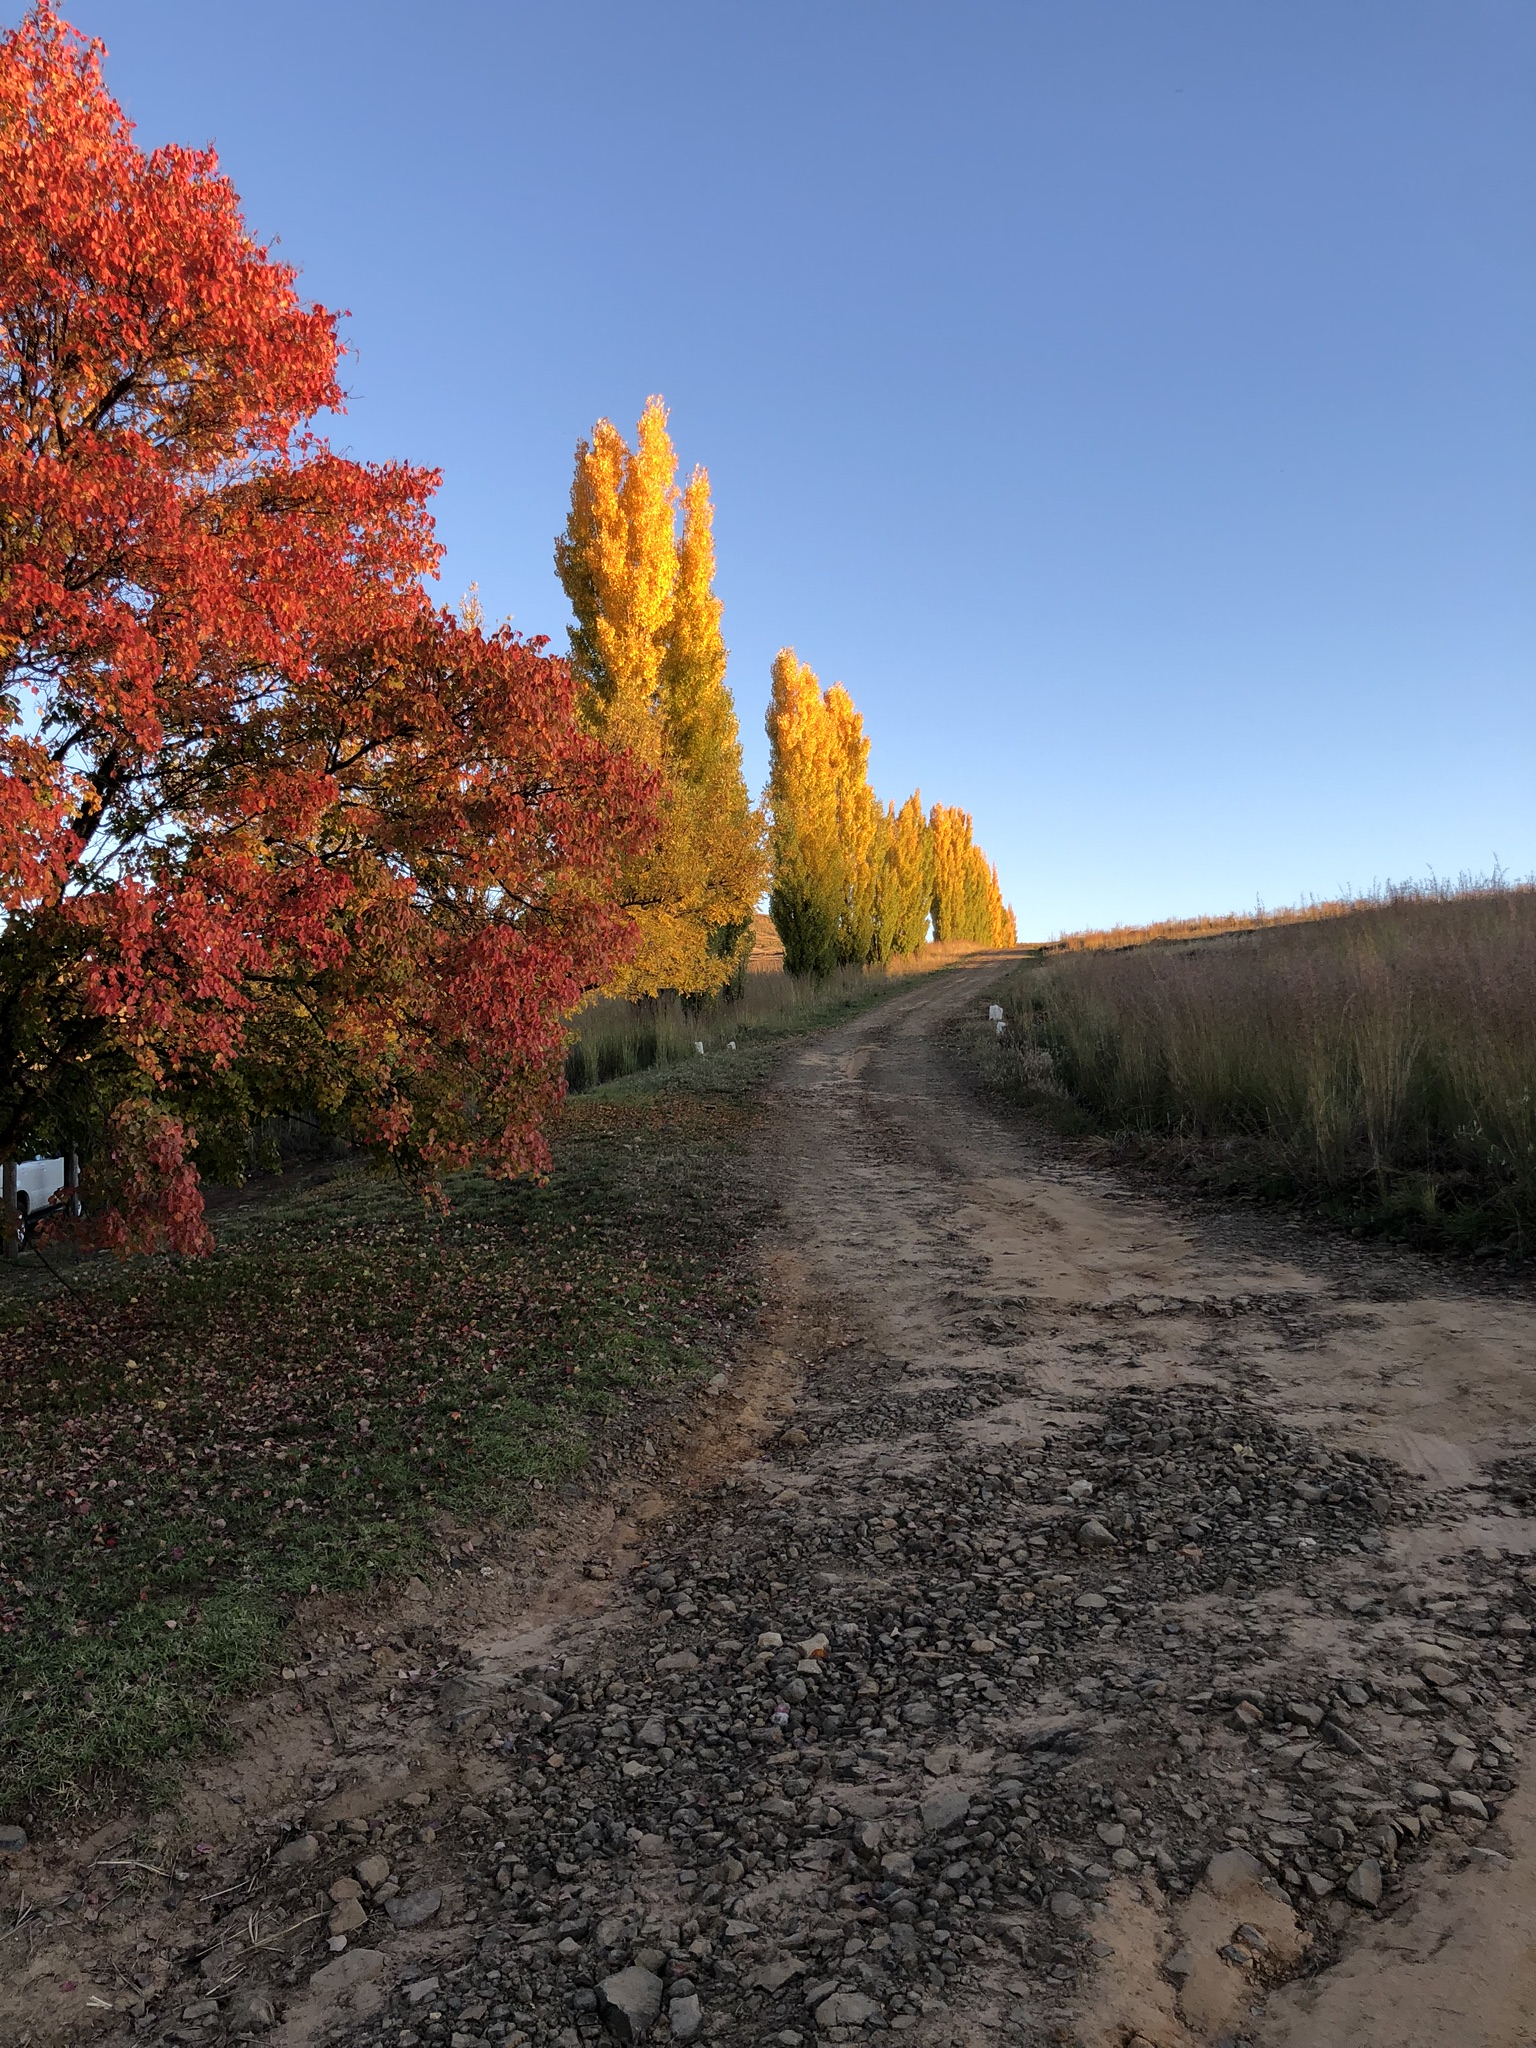 What to do in Clarens Free State 60